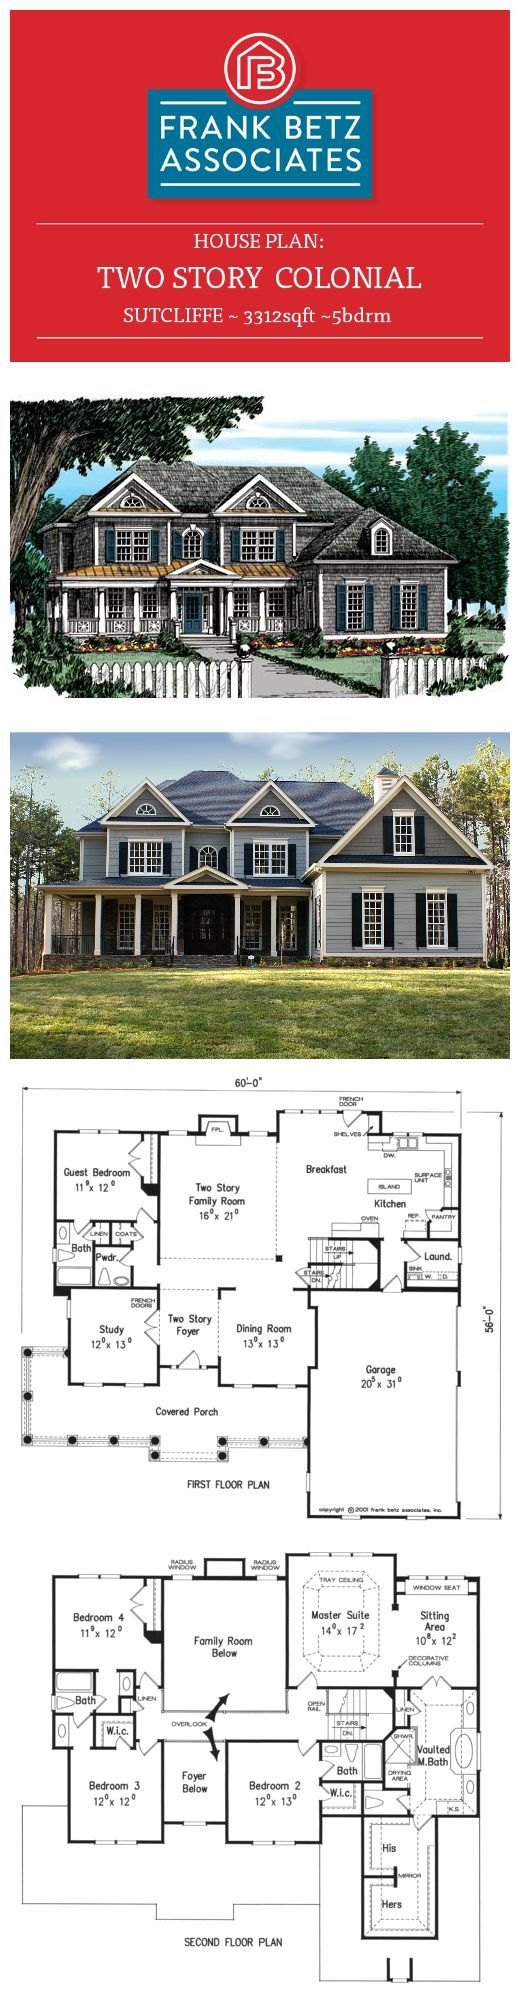 Sutcliffe: 3312sqft|5bdrm two-story Colonial house plan by Frank Betz Associates Inc.